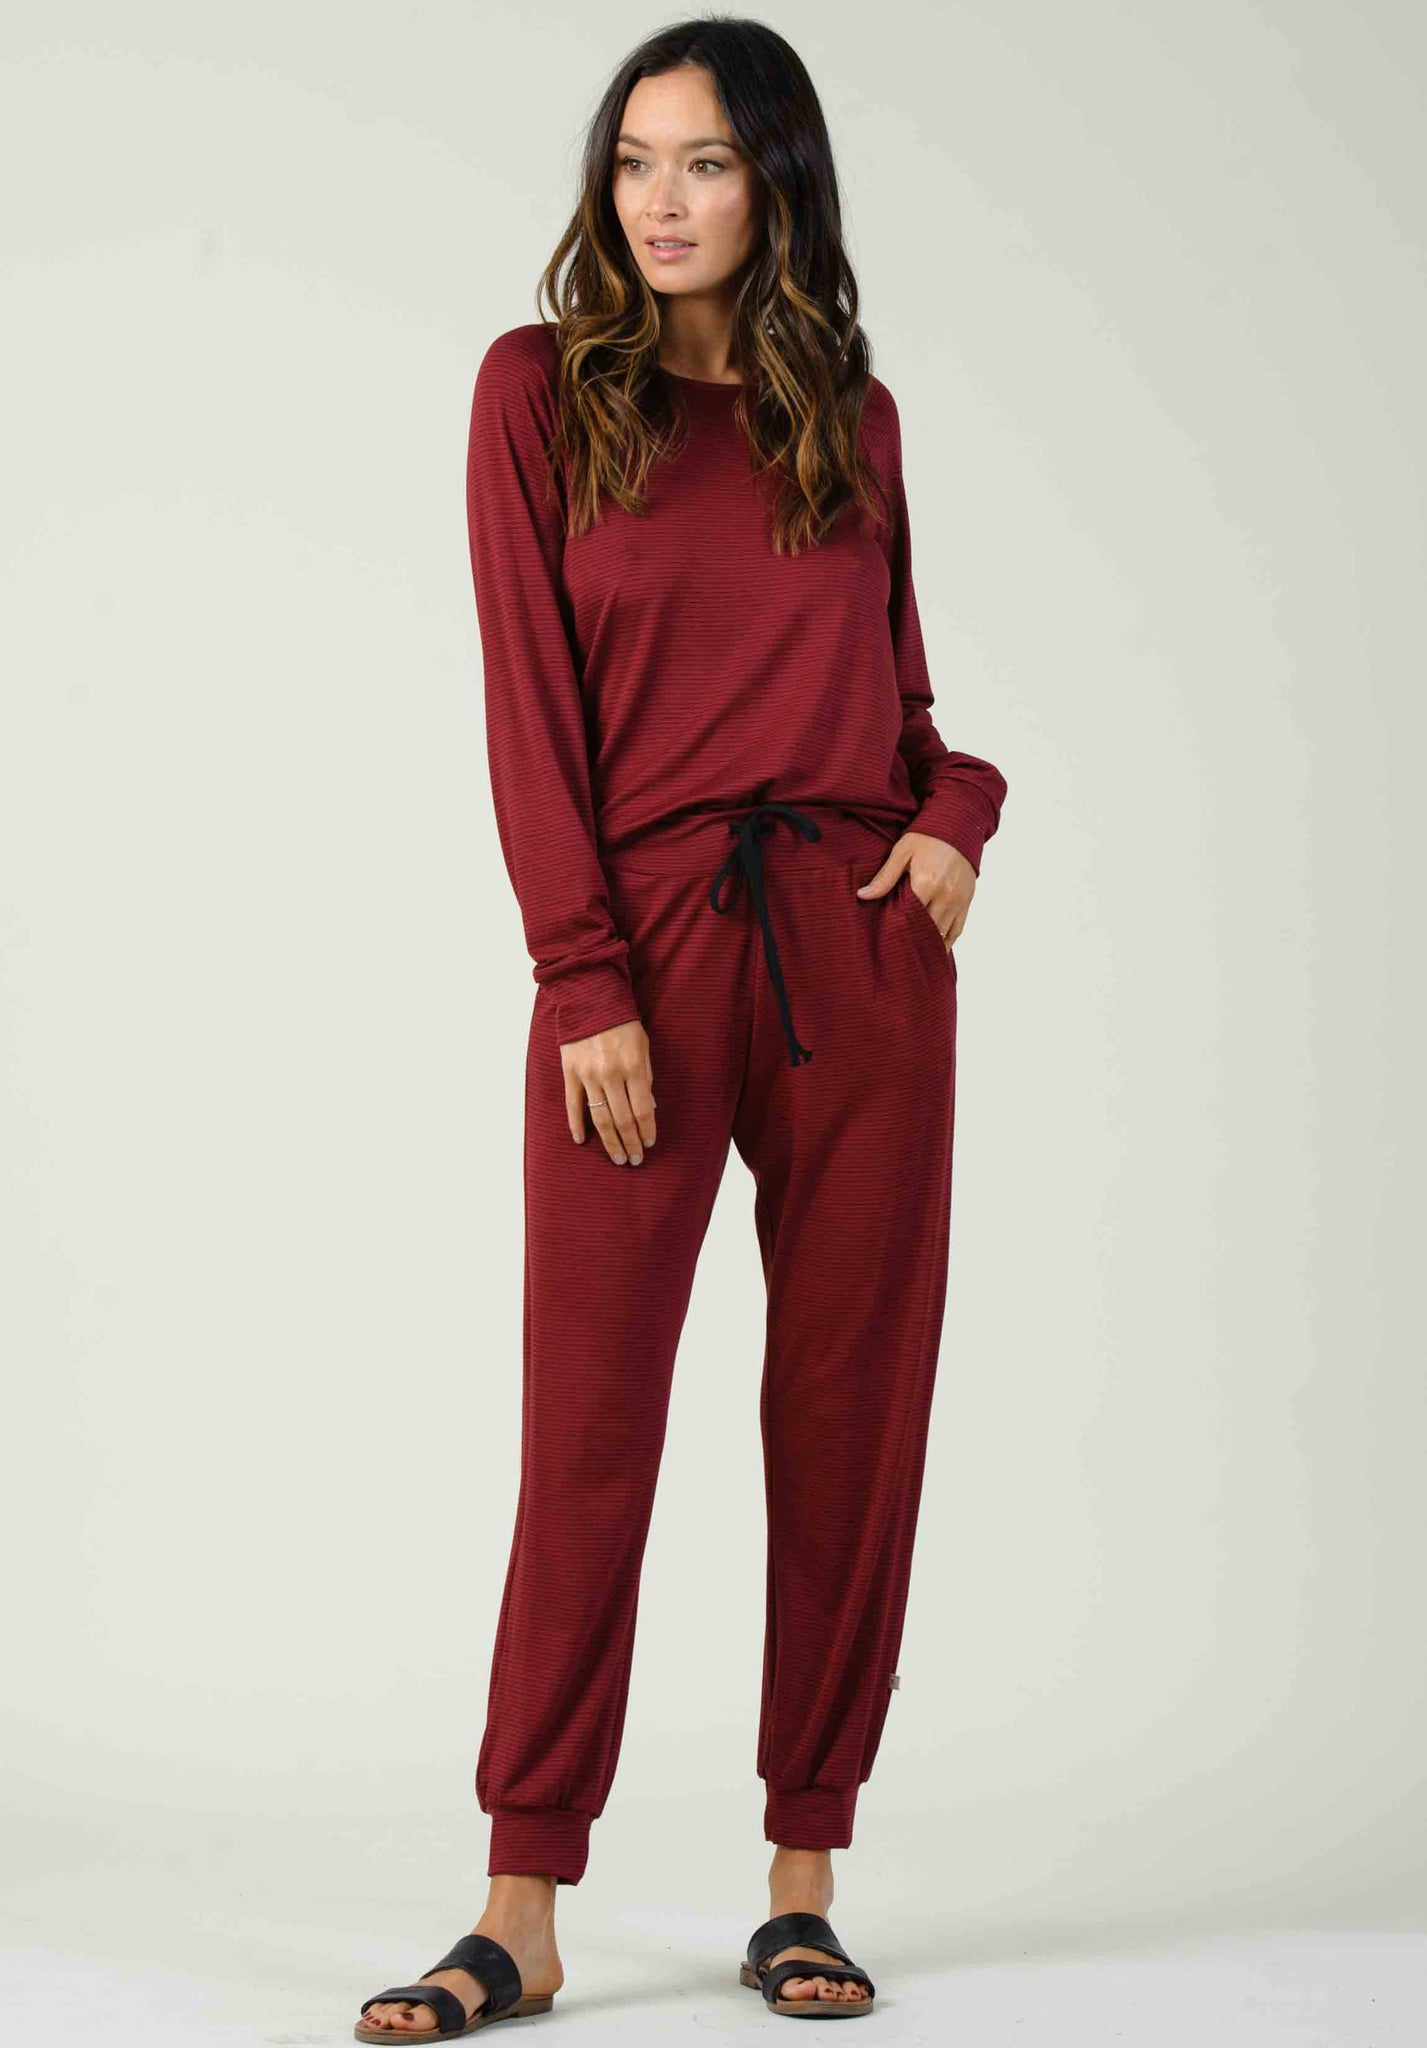 MOSCOW DRAWSTRING JOGGERS | BURGUNDY/BLACK STRIPE